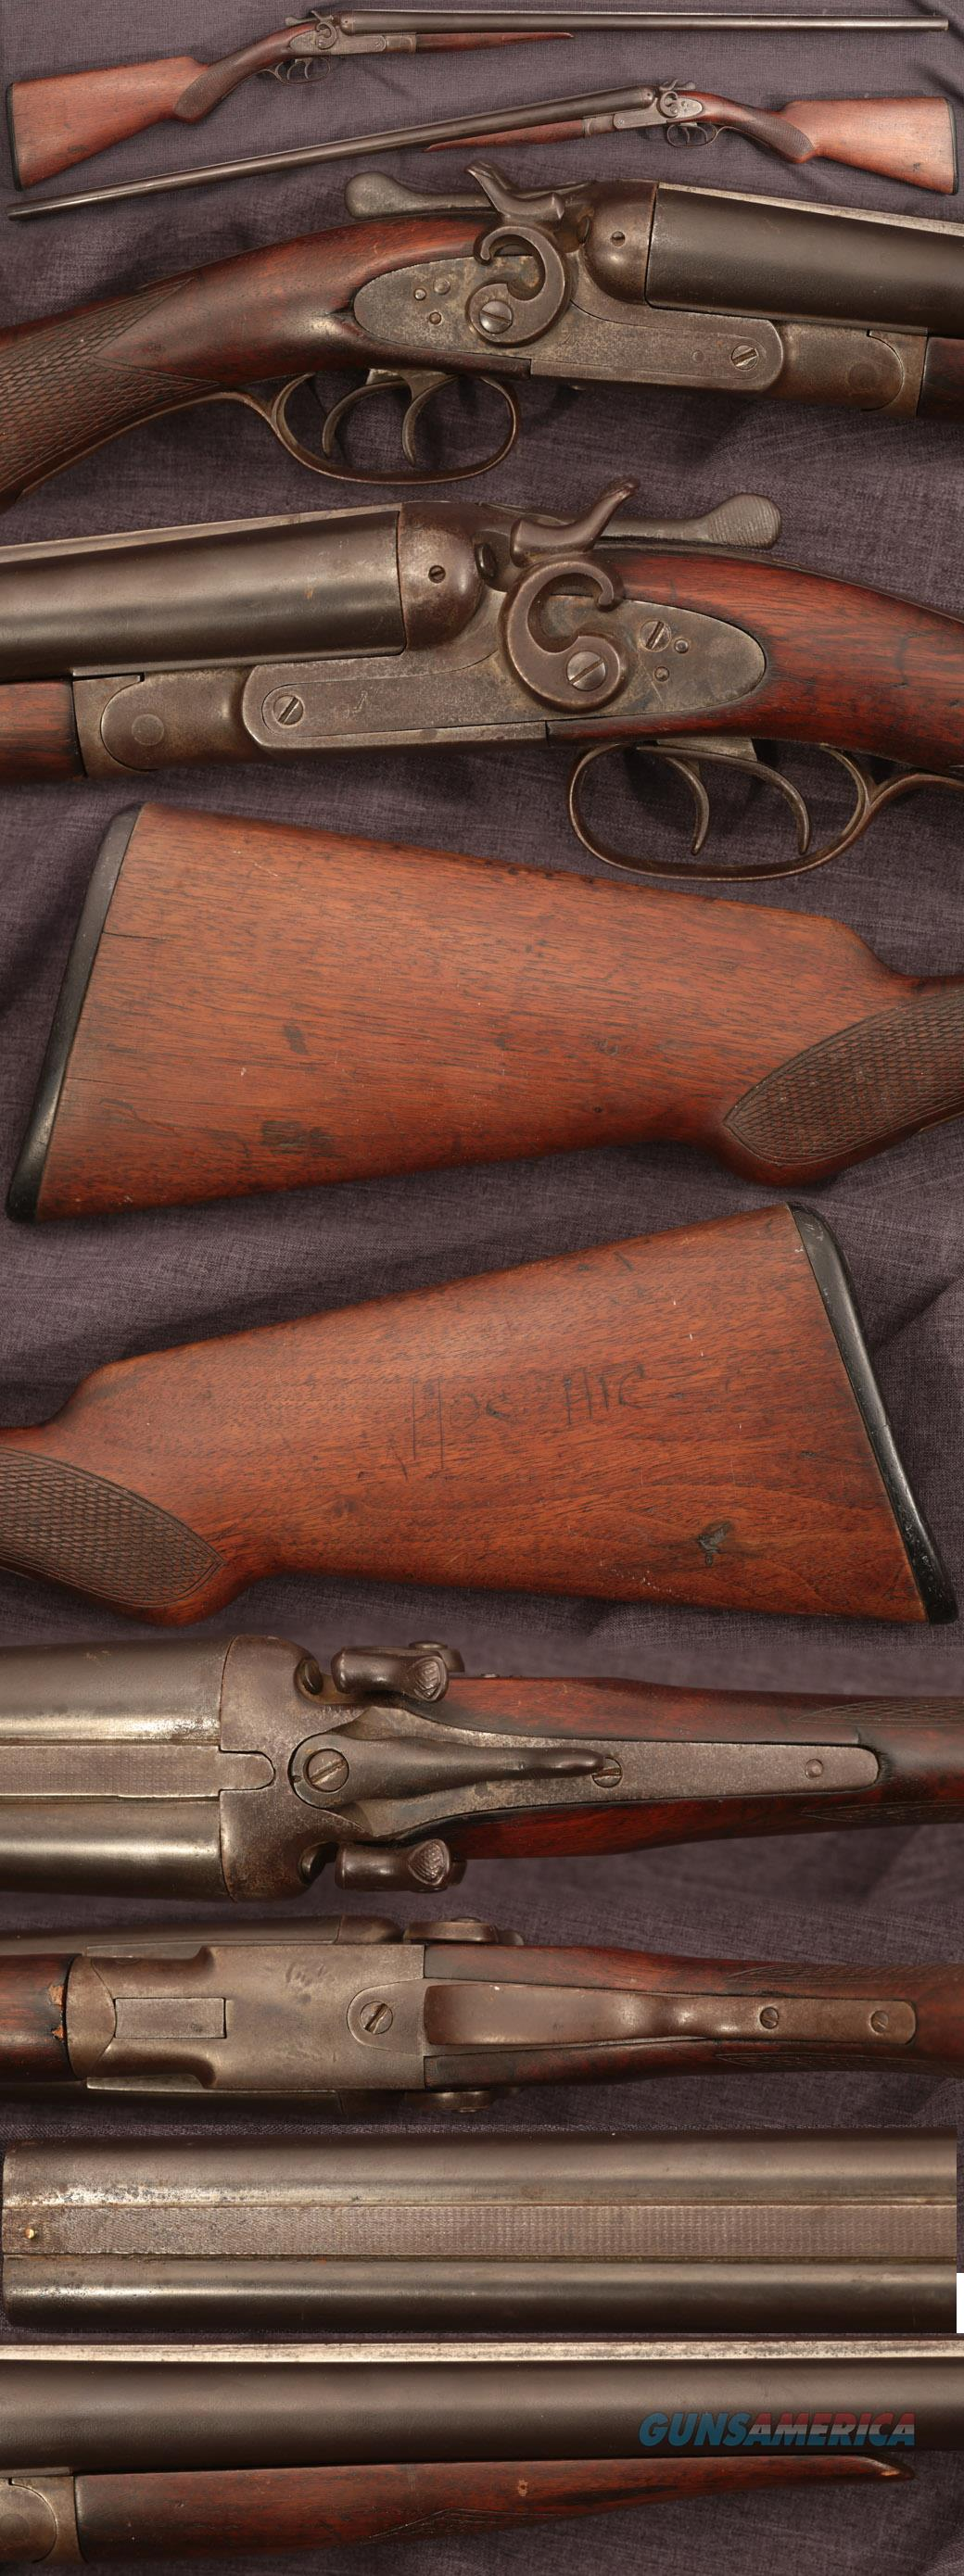 N.R.Davis antique American double shotgun  Guns > Shotguns > Antique (Pre-1899) Shotguns - Misc.